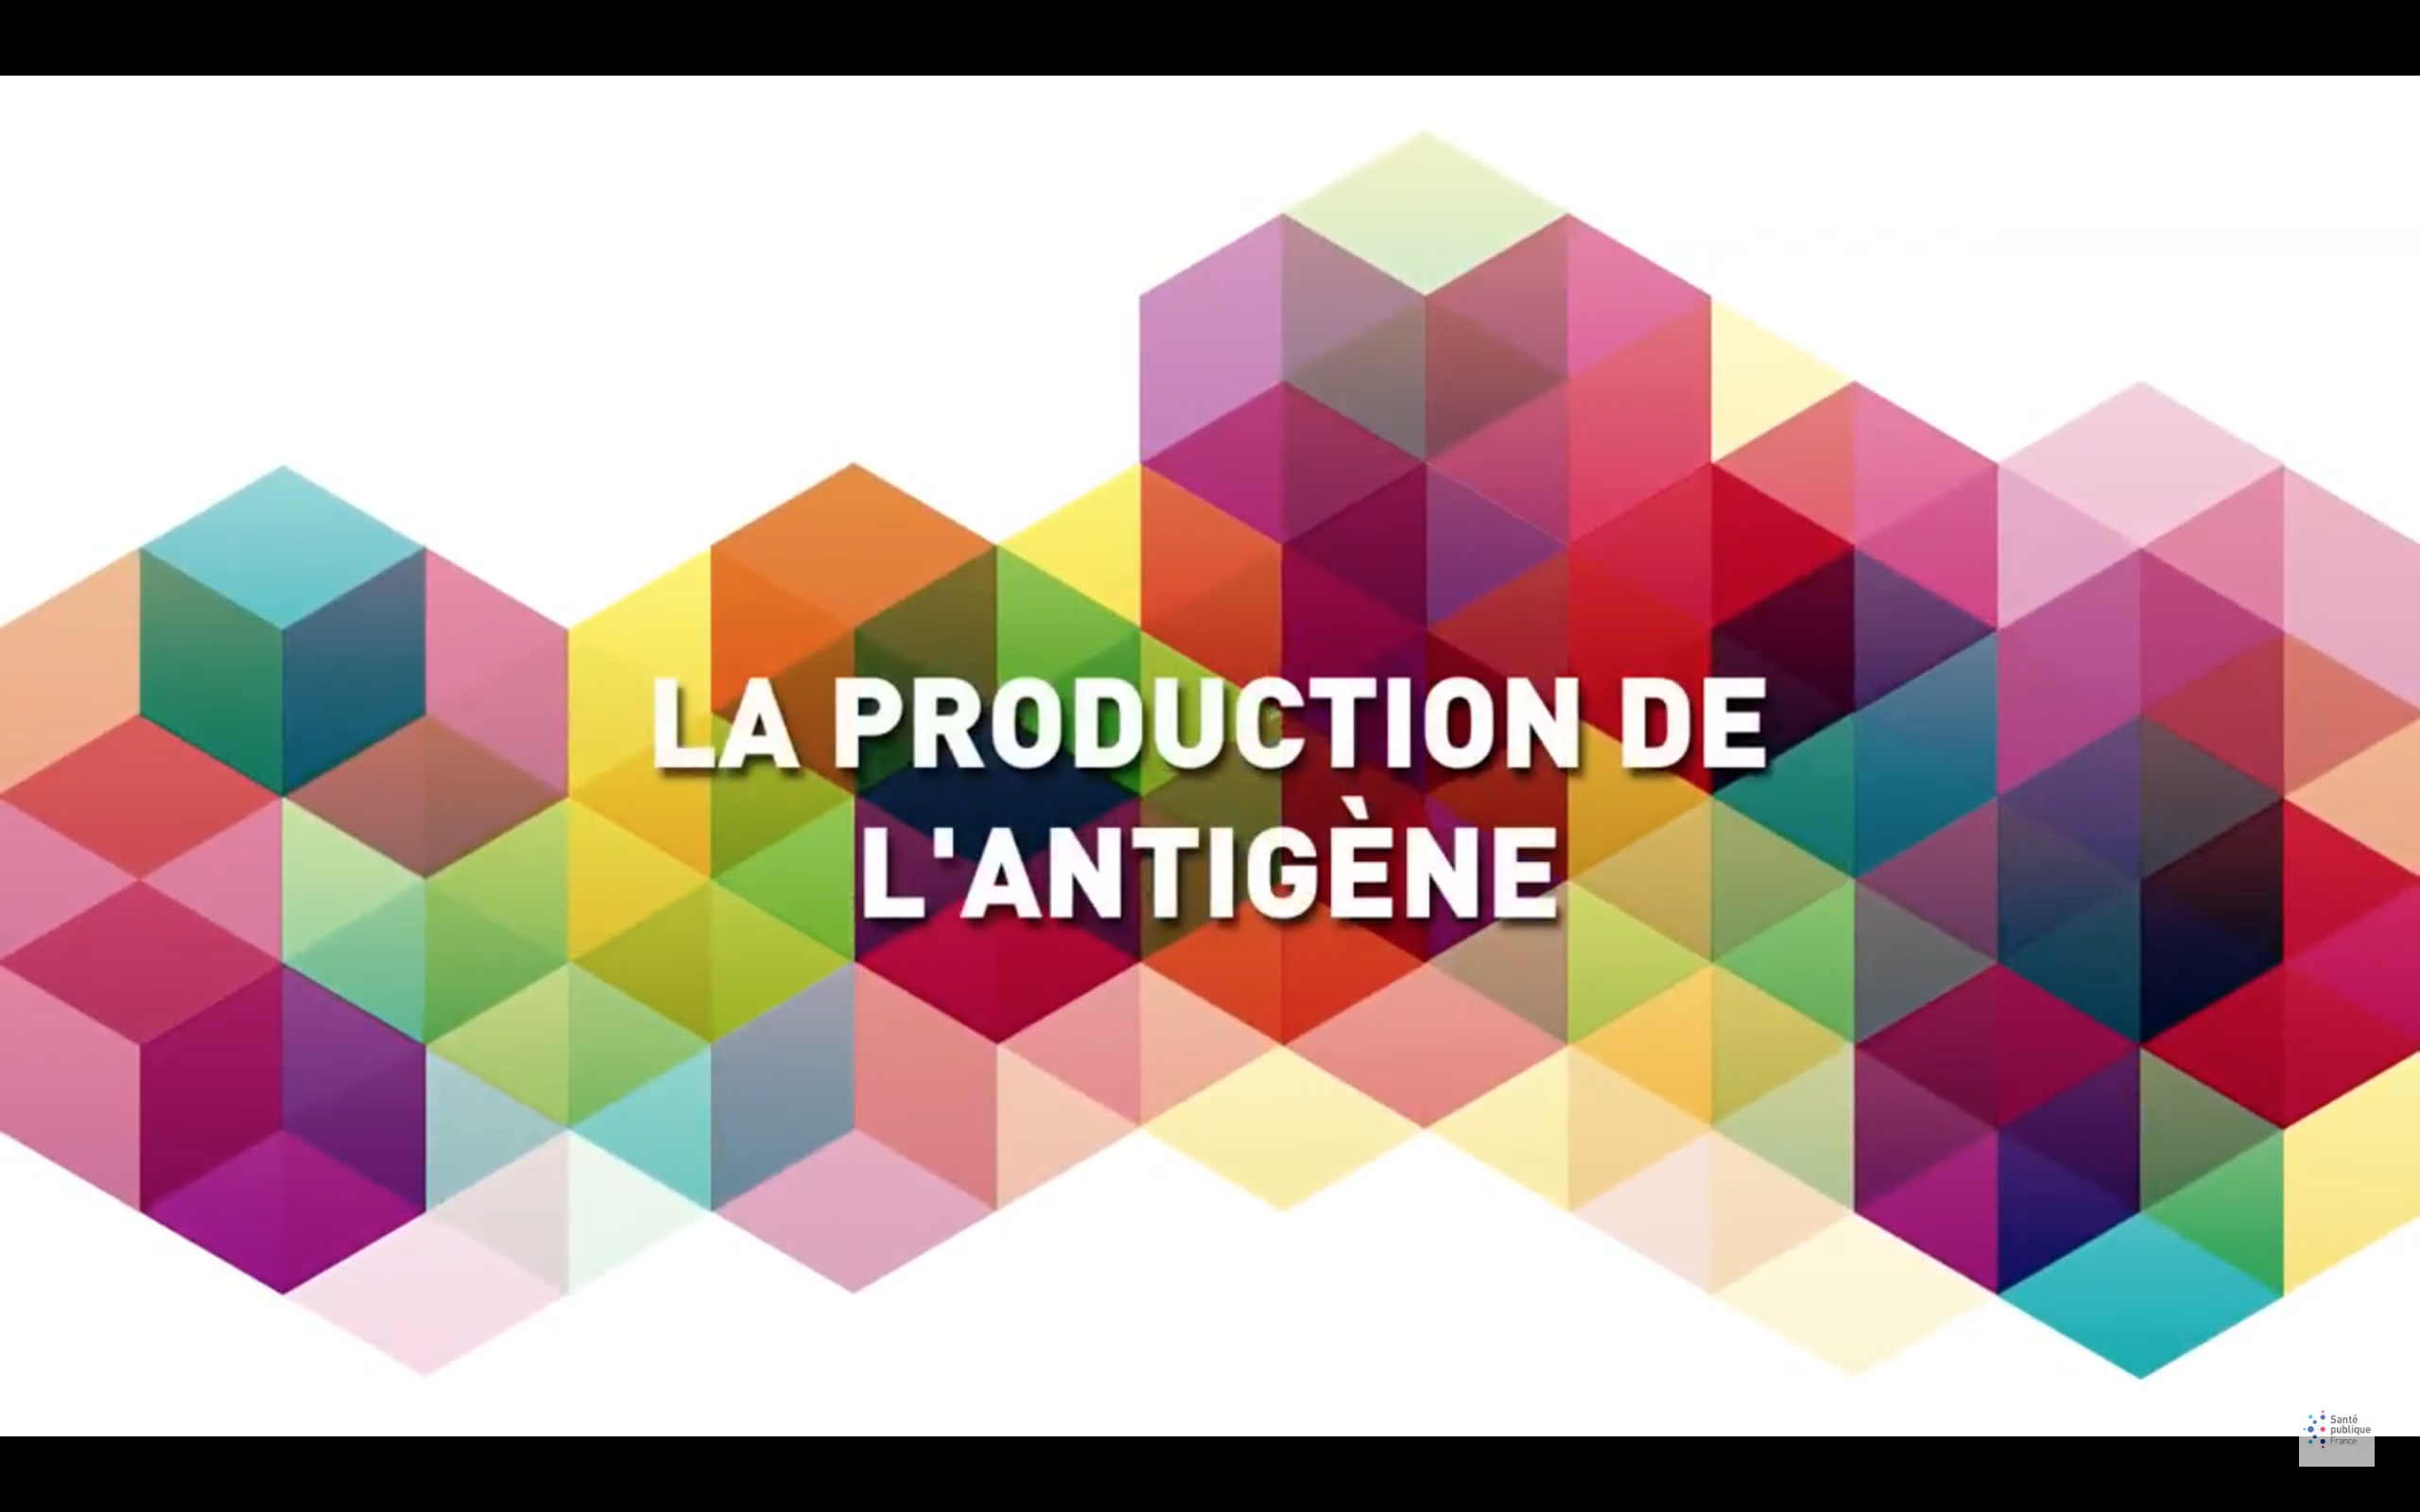 La production de l'antigène